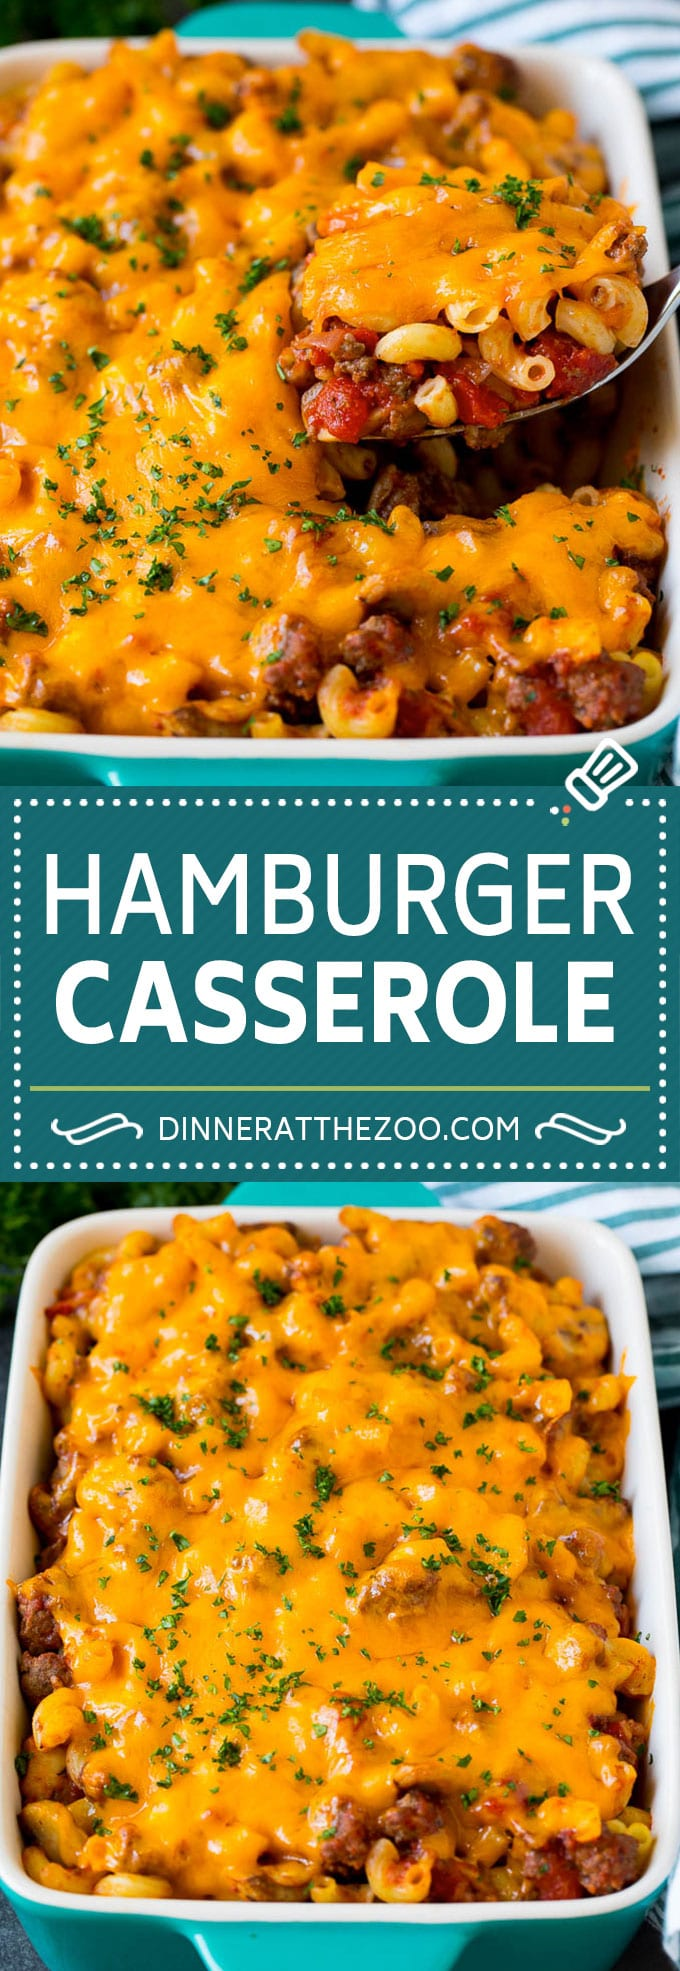 This Hamburger Casserole Is Ground Beef And Mushrooms In Tomato Sauce Tossed With Pasta And In 2020 Hamburger Casserole Dinners Hamburger Casserole Dinner Casseroles